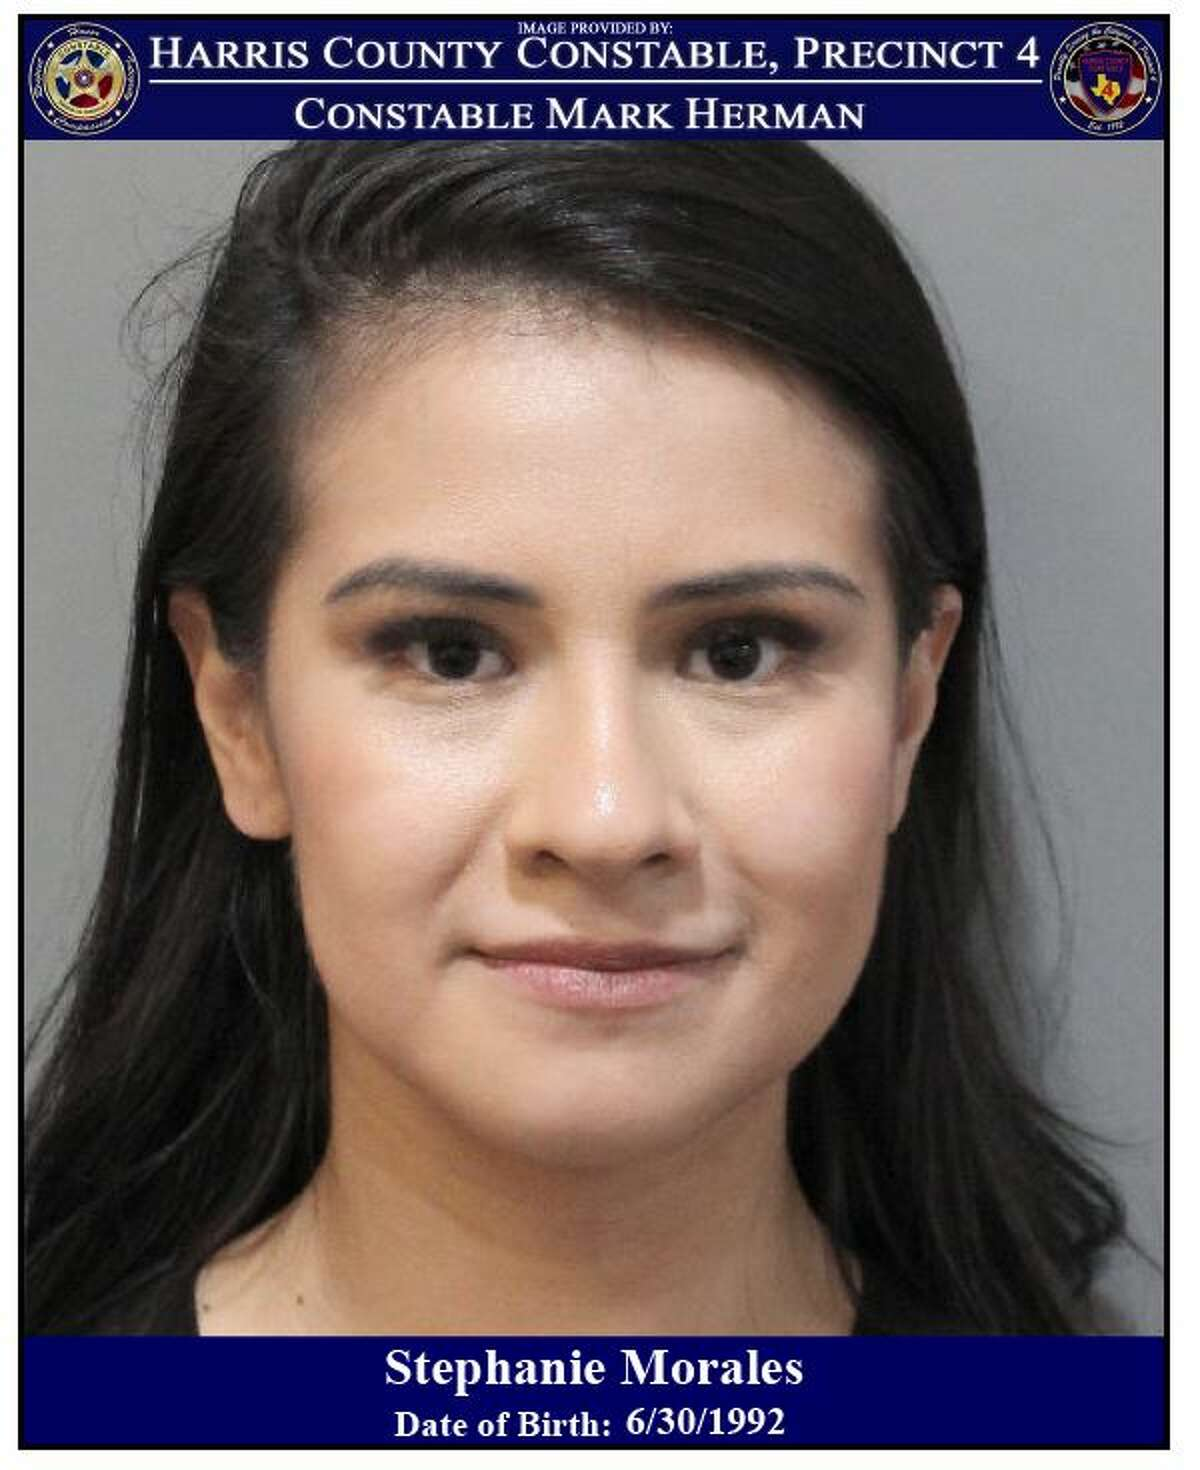 Stephanie Morales, 27, was charged with driving while intoxicated during a 2019 Labor Day weekend DWI crackdown in north Harris County.